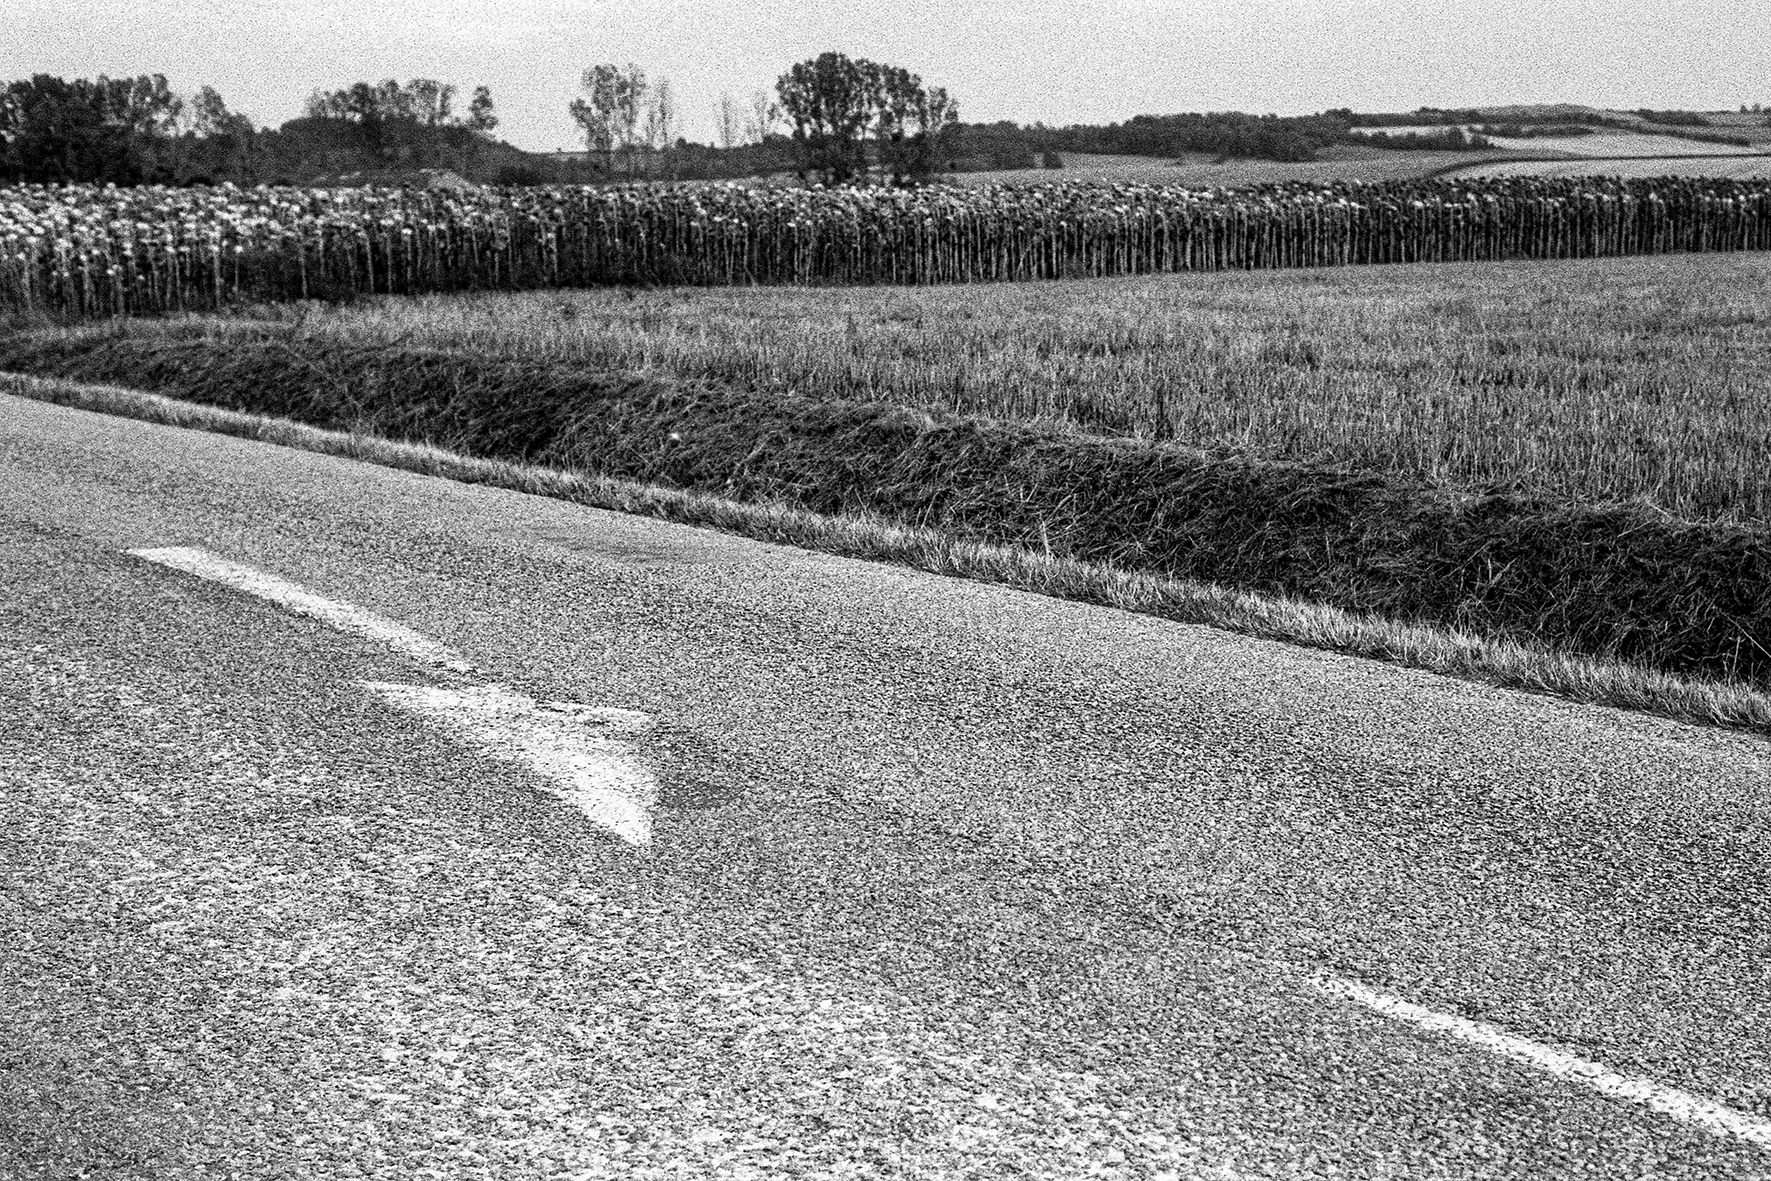 Photographe : Taking the country roads n°12